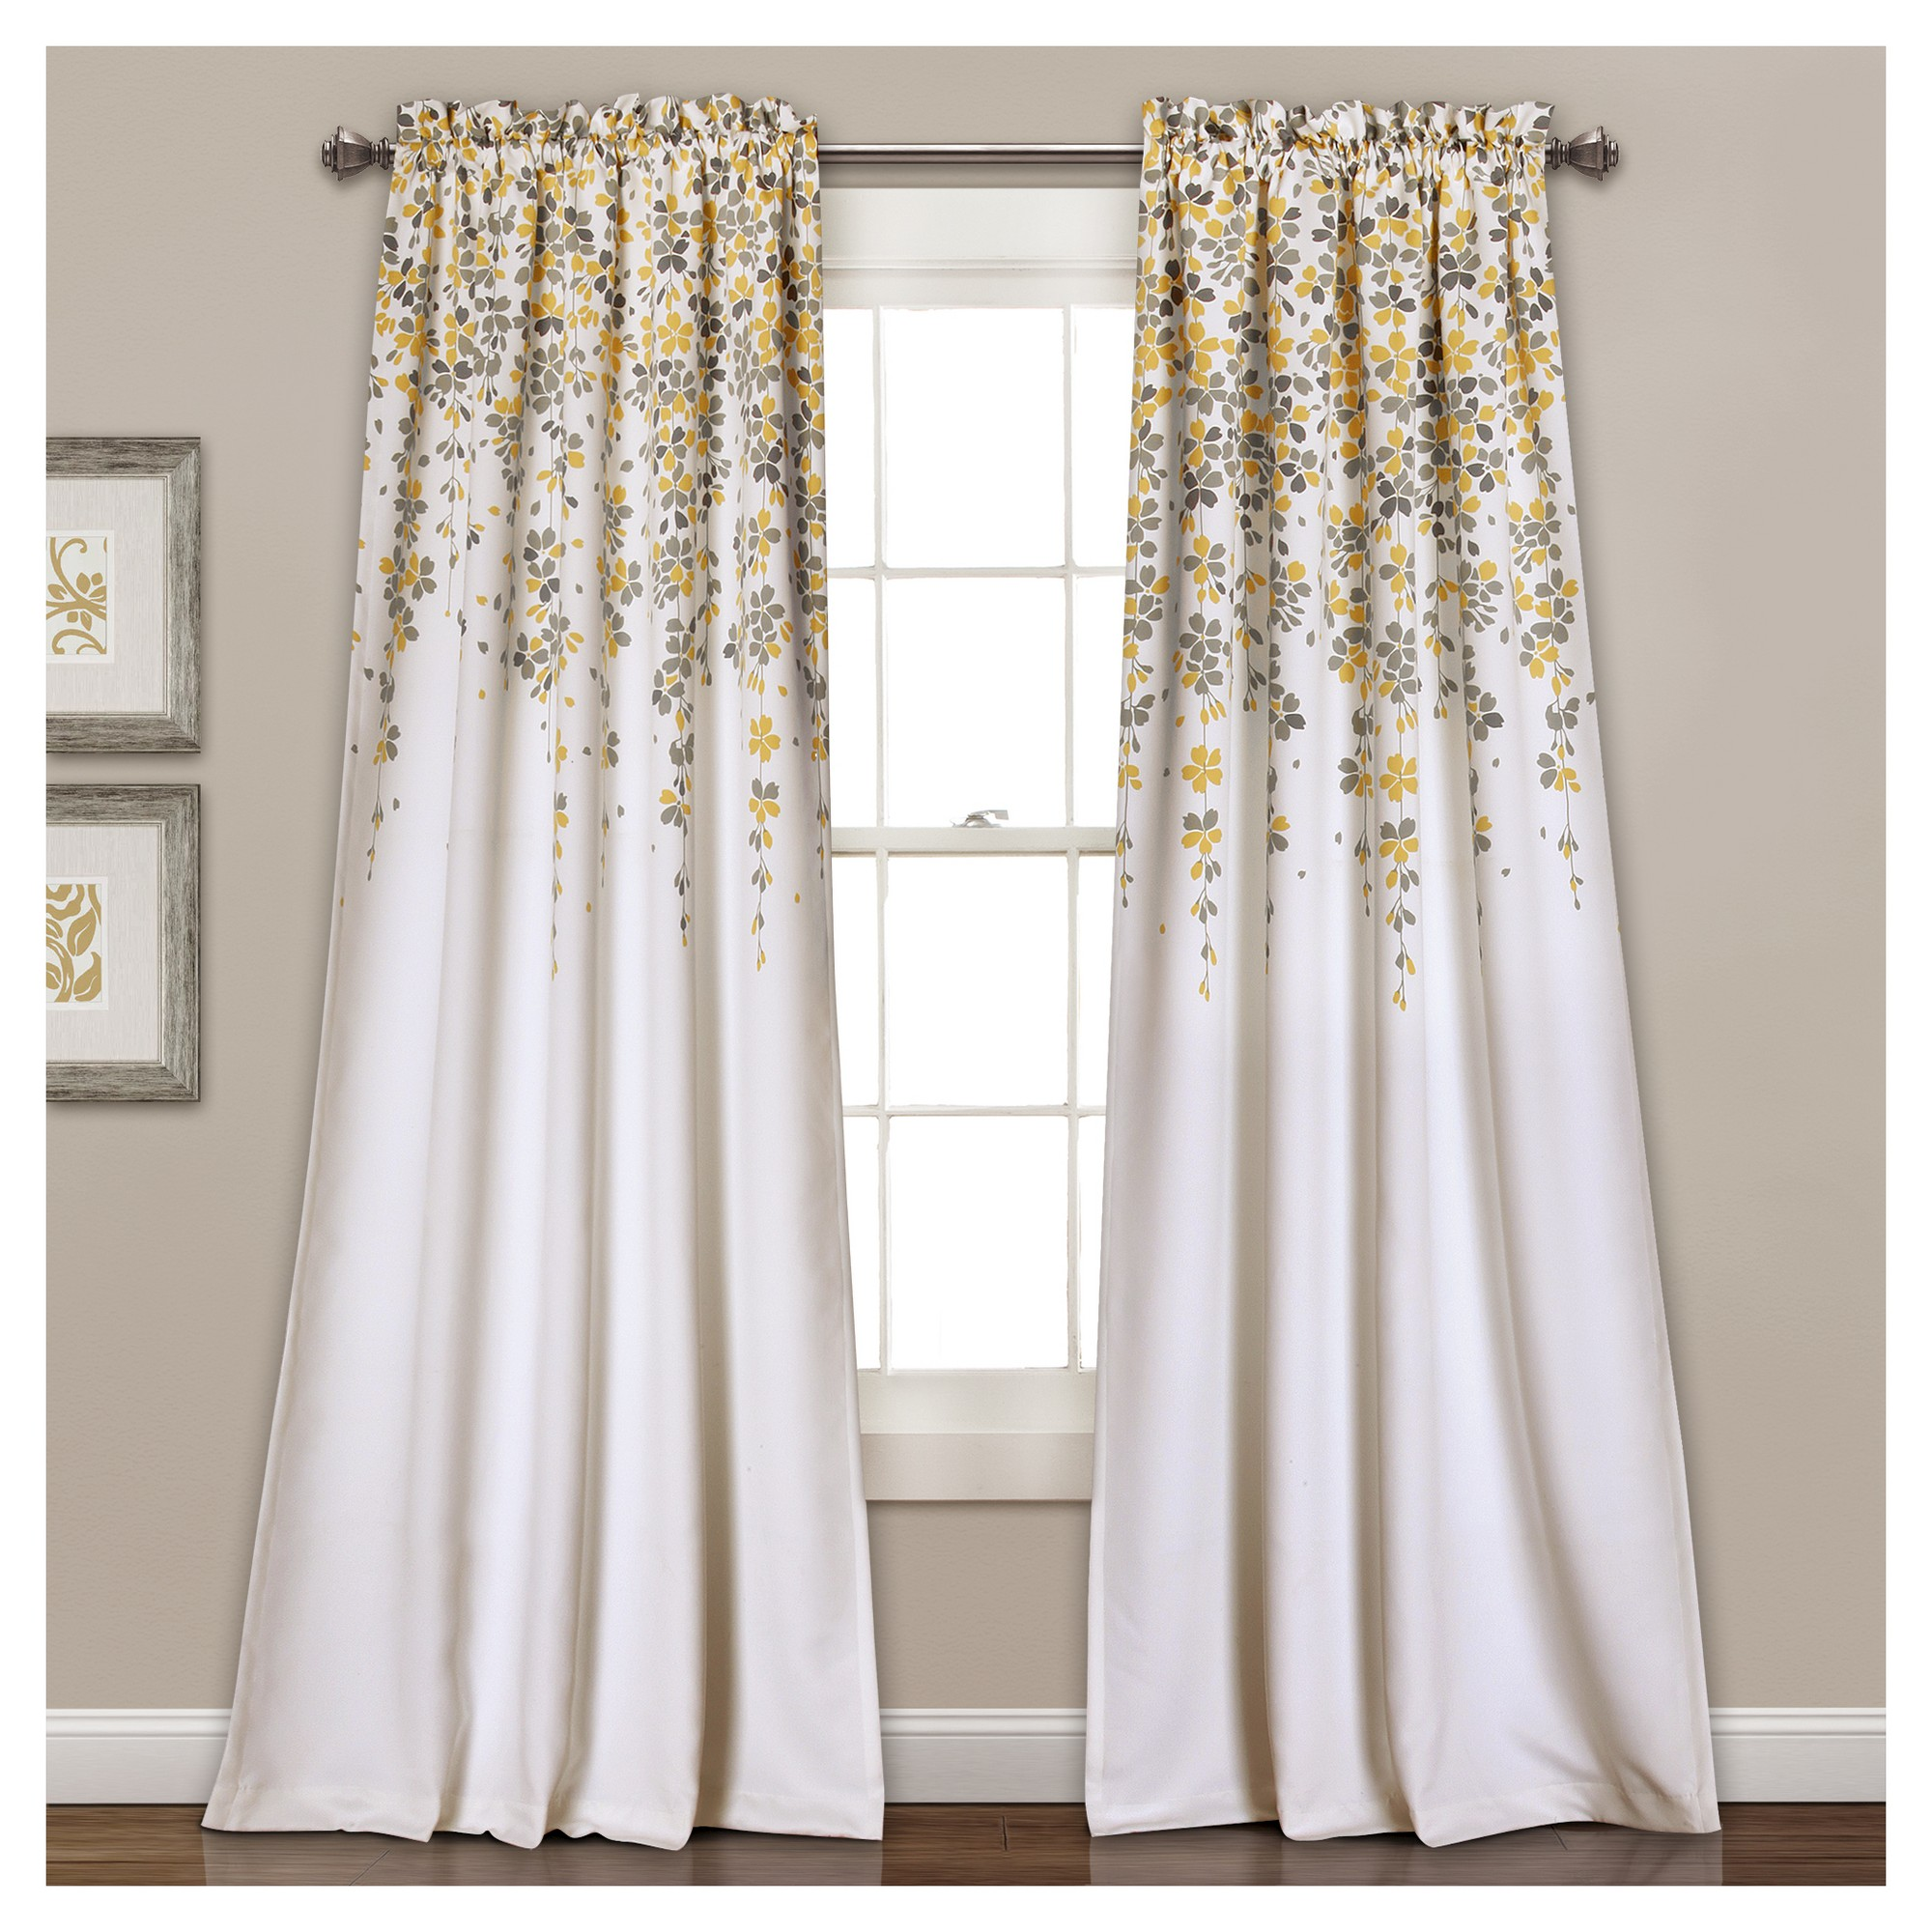 Weeping Flowers Room Darkening Window Curtain Set Yellow Gray